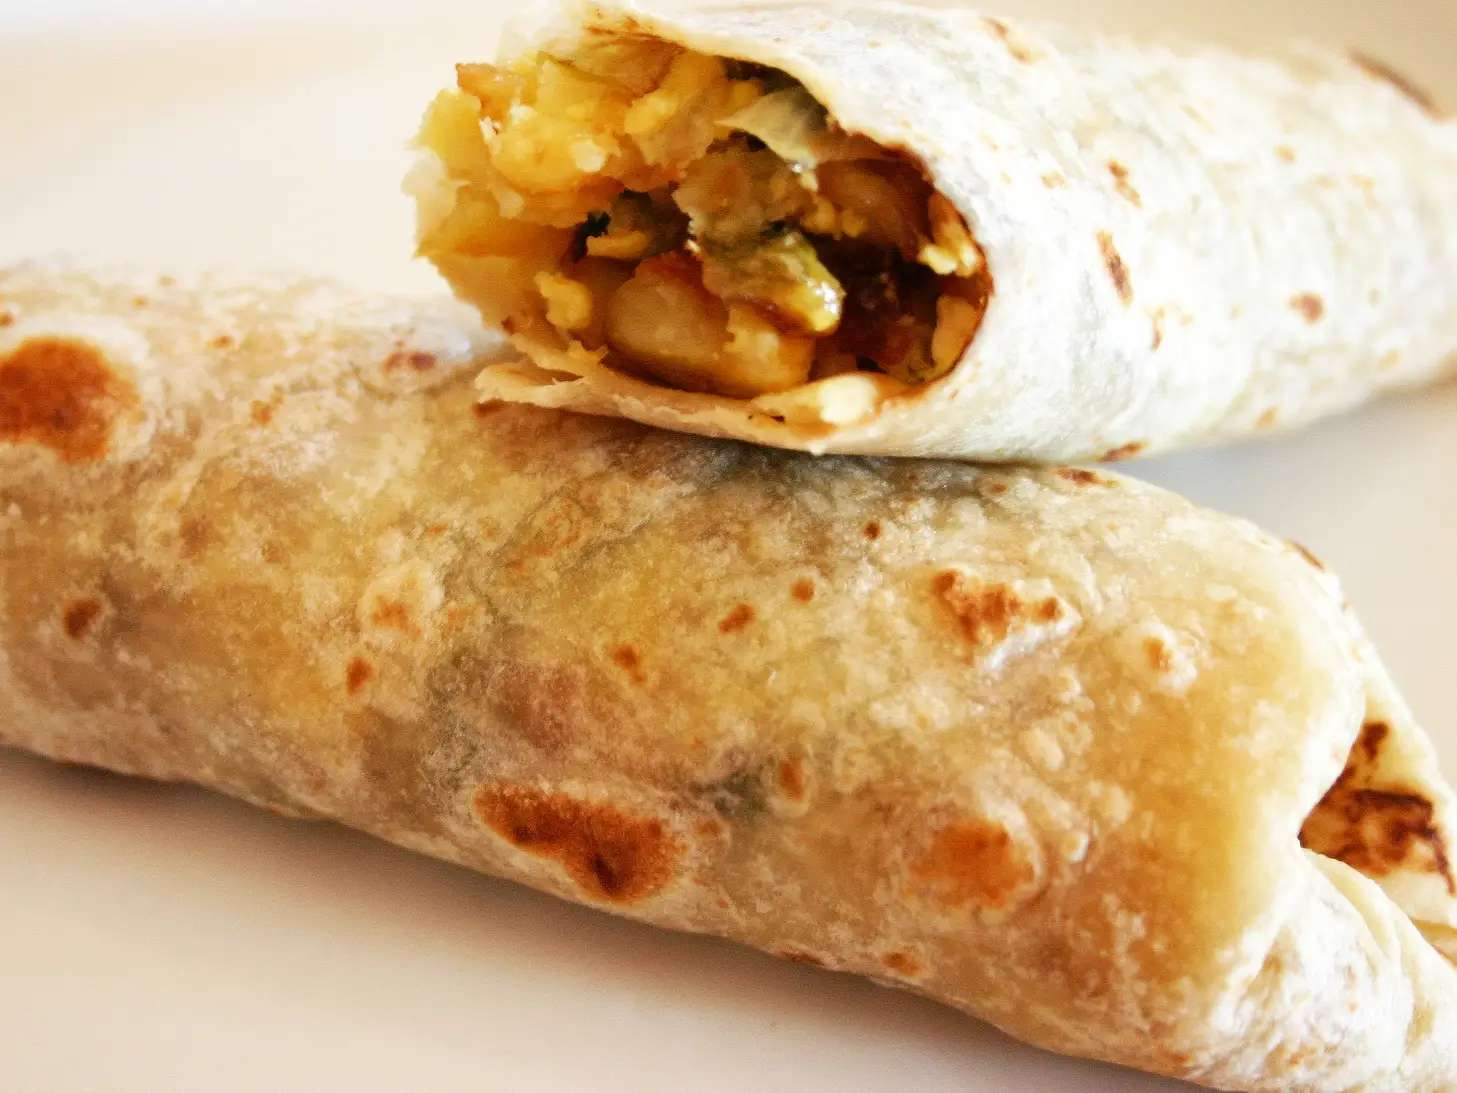 To keep wraps and burritos from falling apart, warm your tortilla before you start rolling everything together. Just for a 10 seconds on each side in a pan, or quickly in the microwave — you'll be surprised how well your wrap stays together.